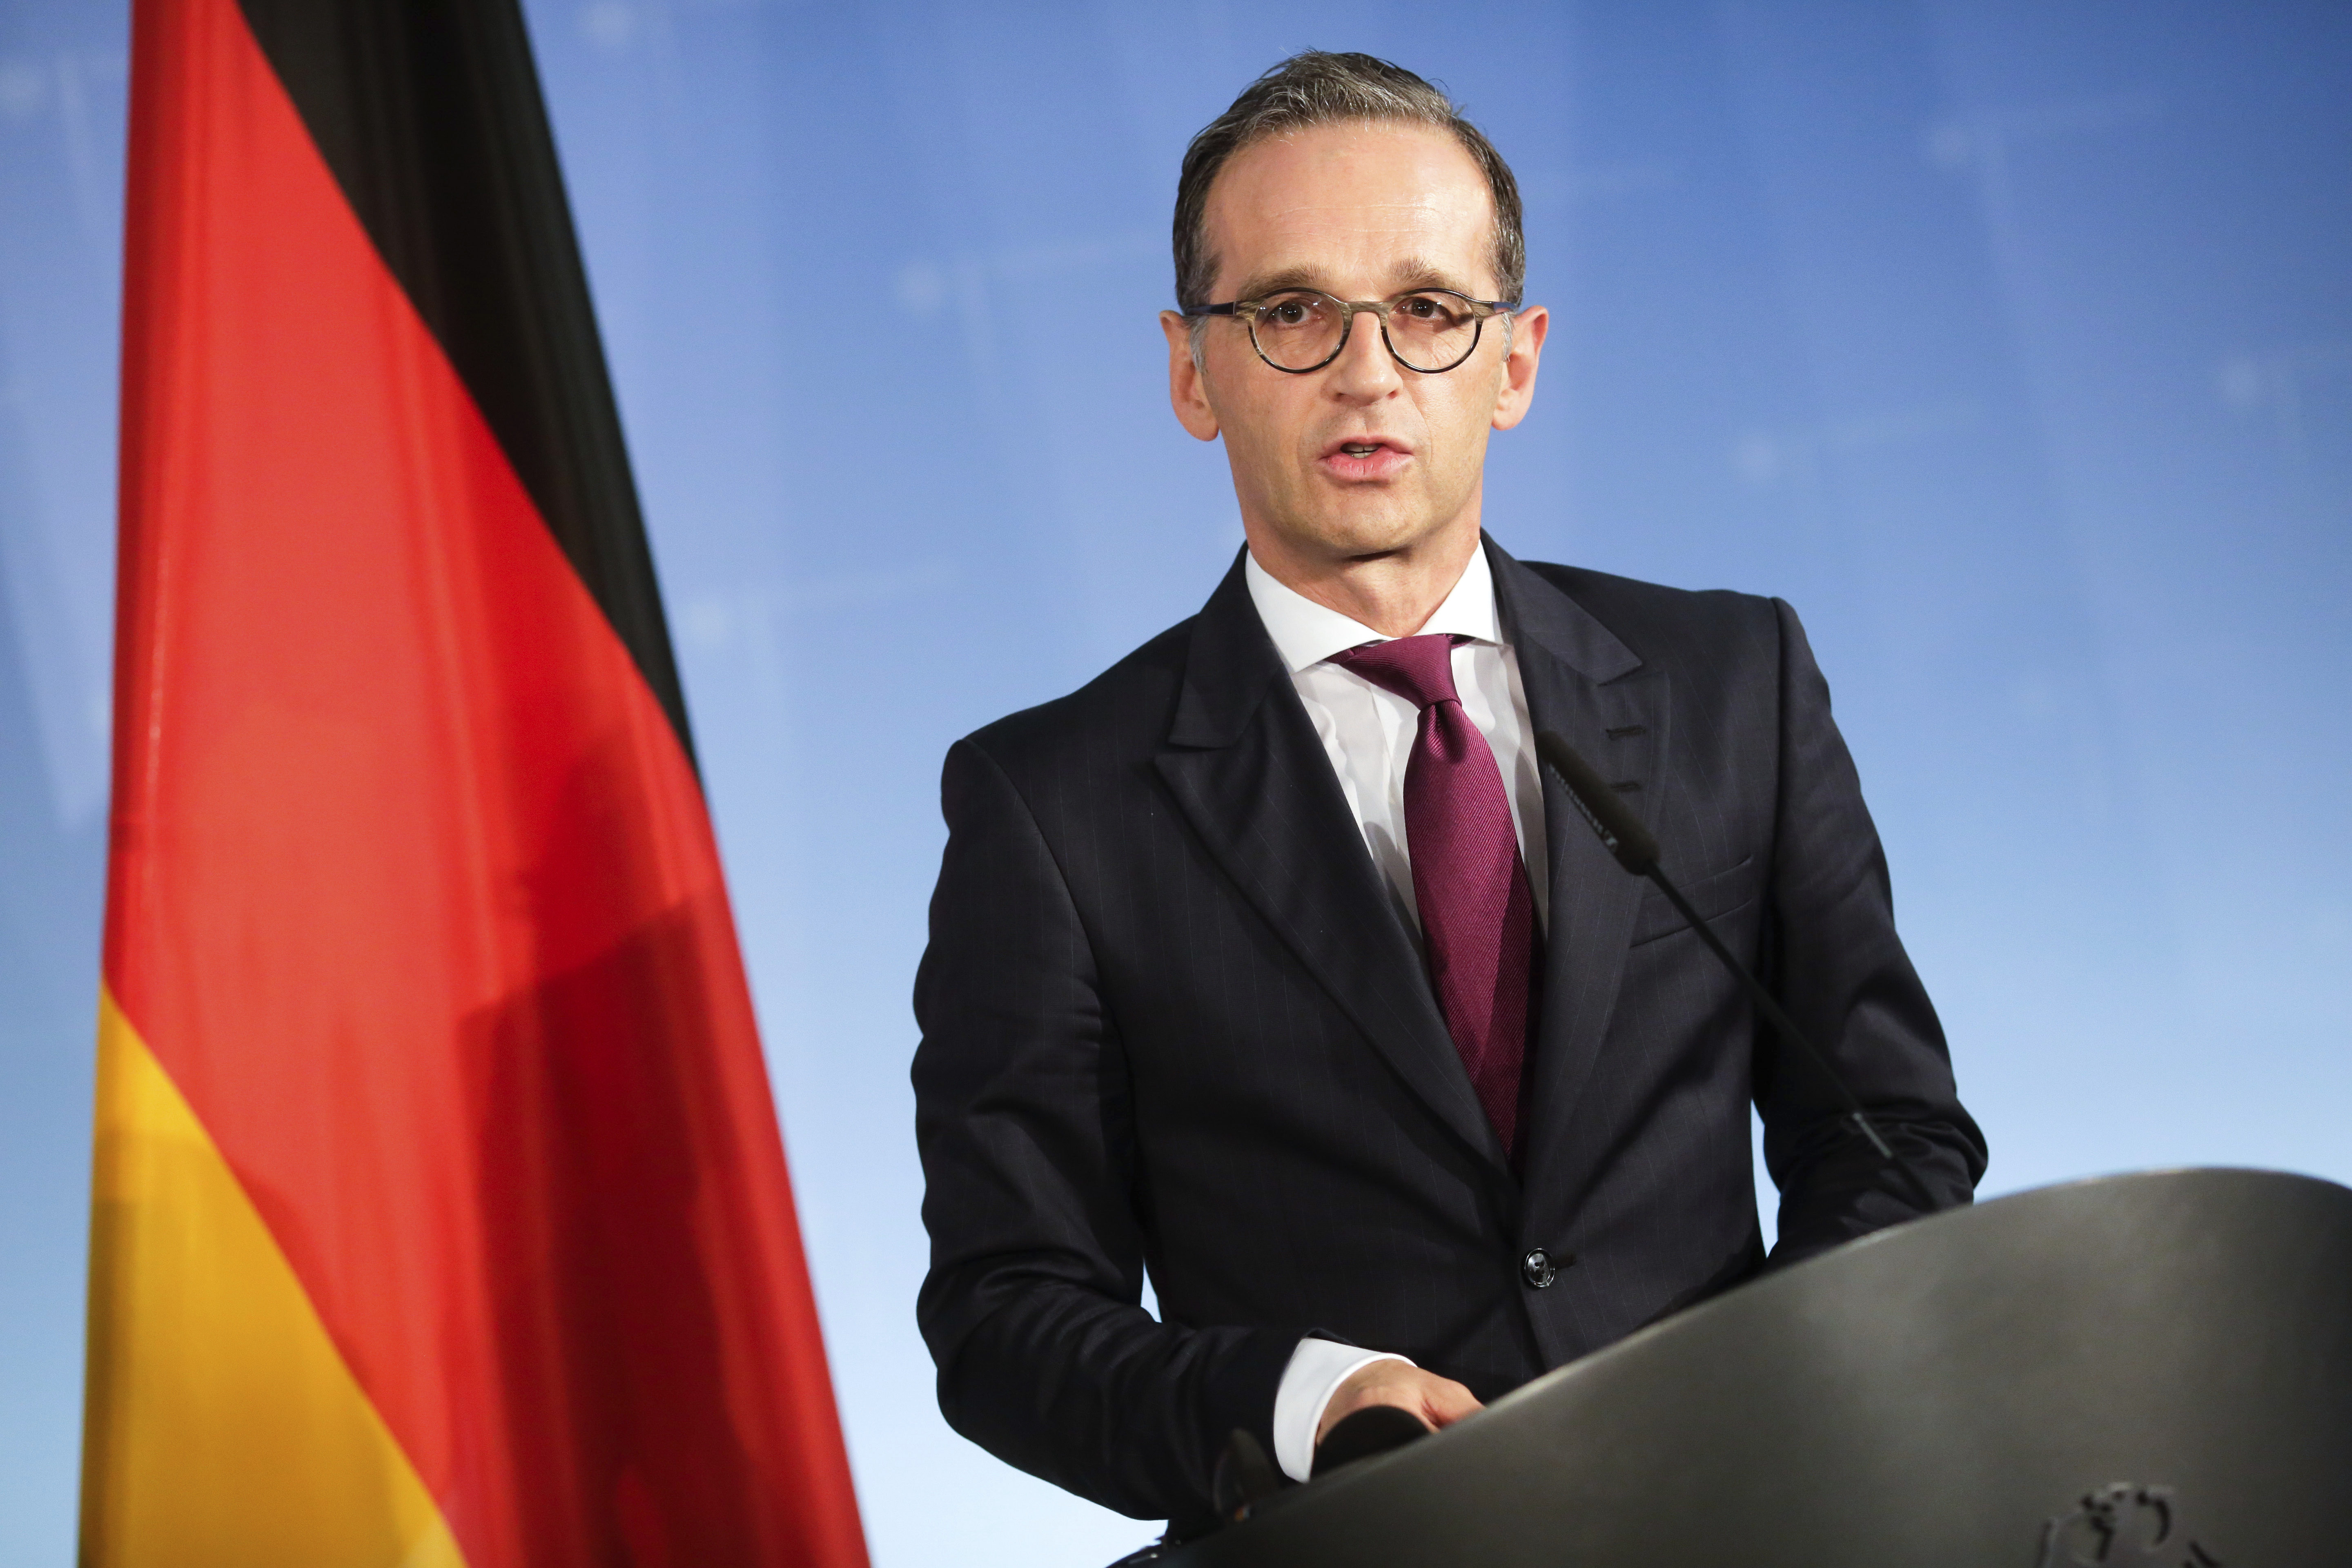 Germany seeks to woo Americans amid rocky Trump relationship